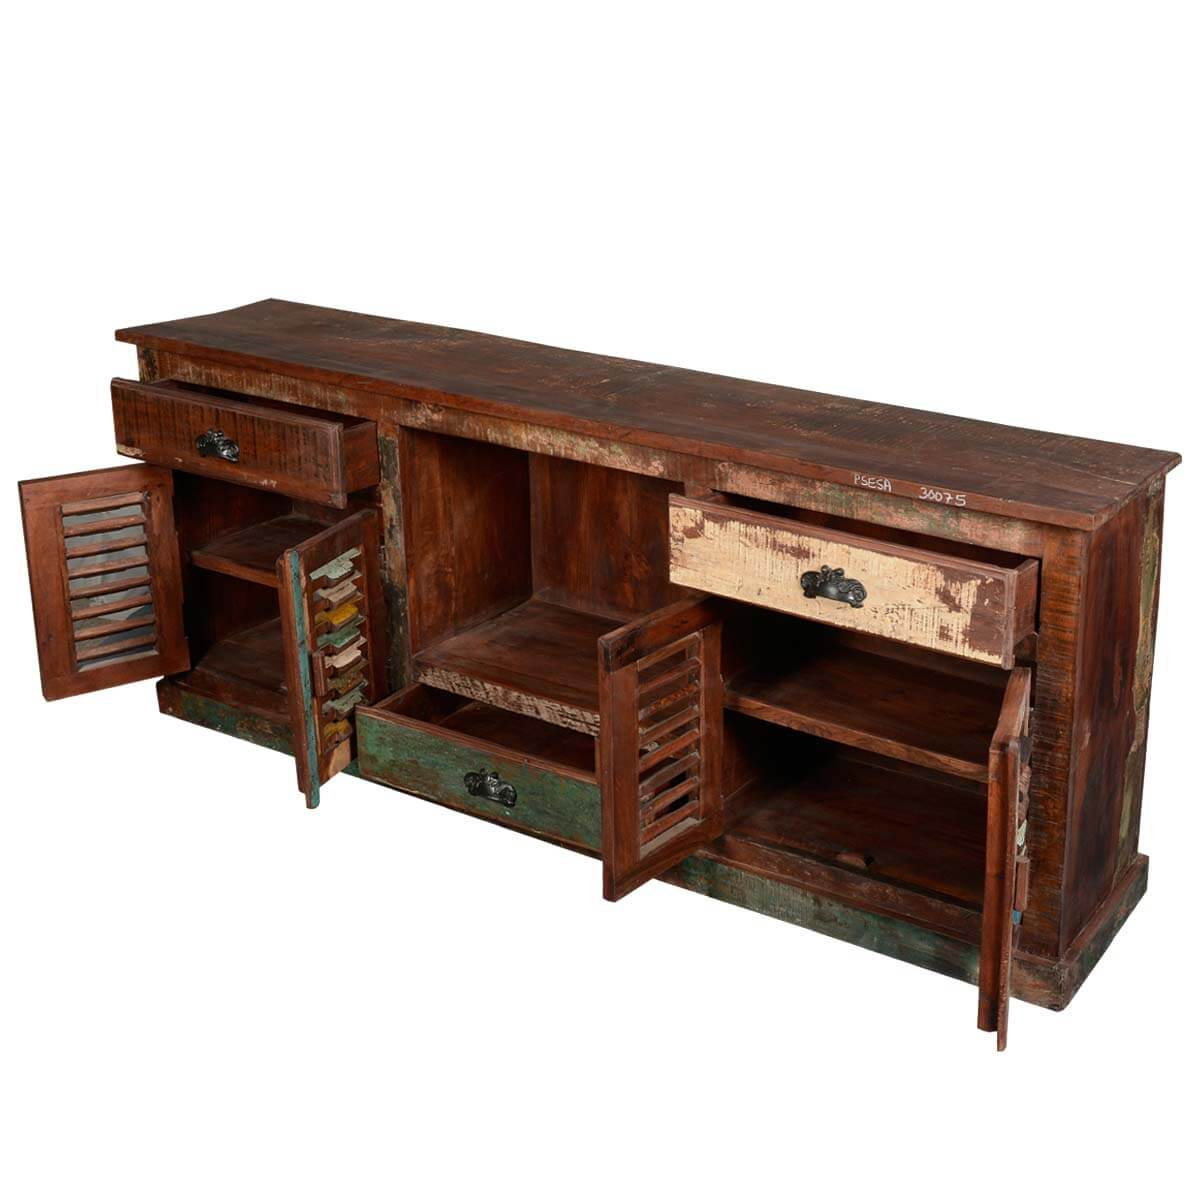 Rustic reclaimed wood large tv stand media console